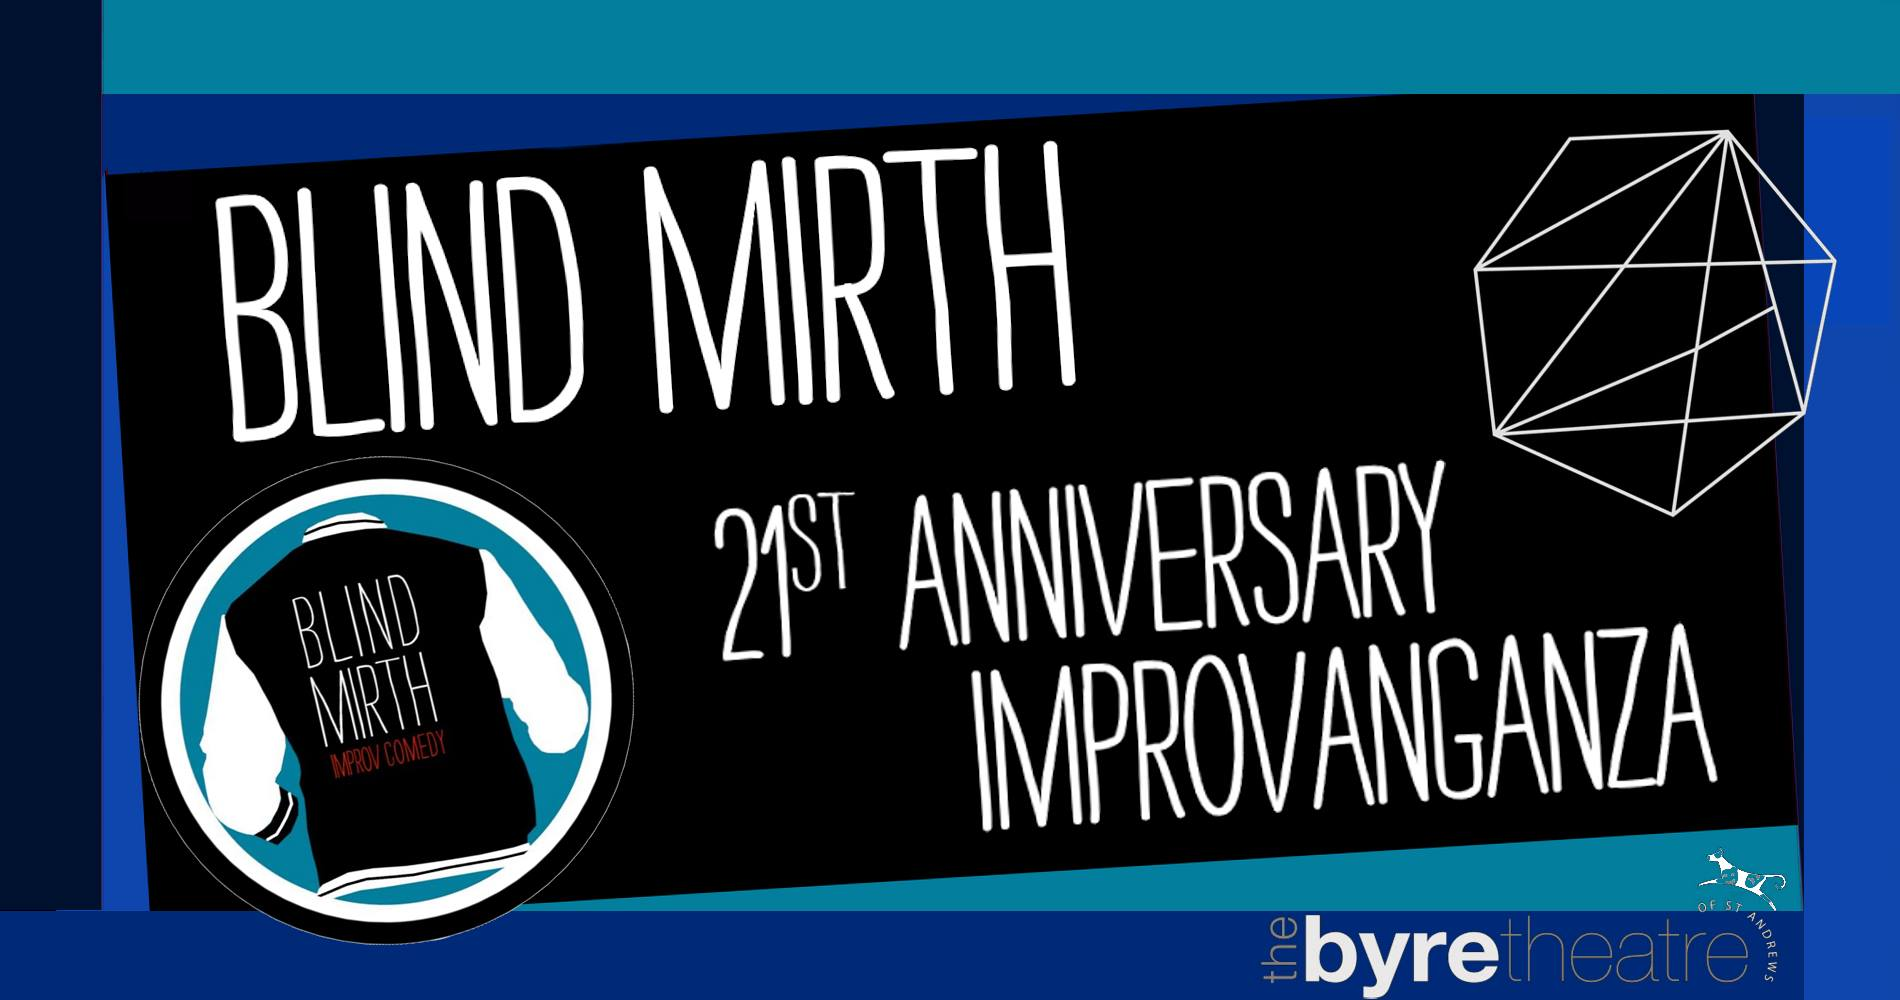 "Blind Mirth's 21st Anniversary ""Improvaganza"": Reviewed"